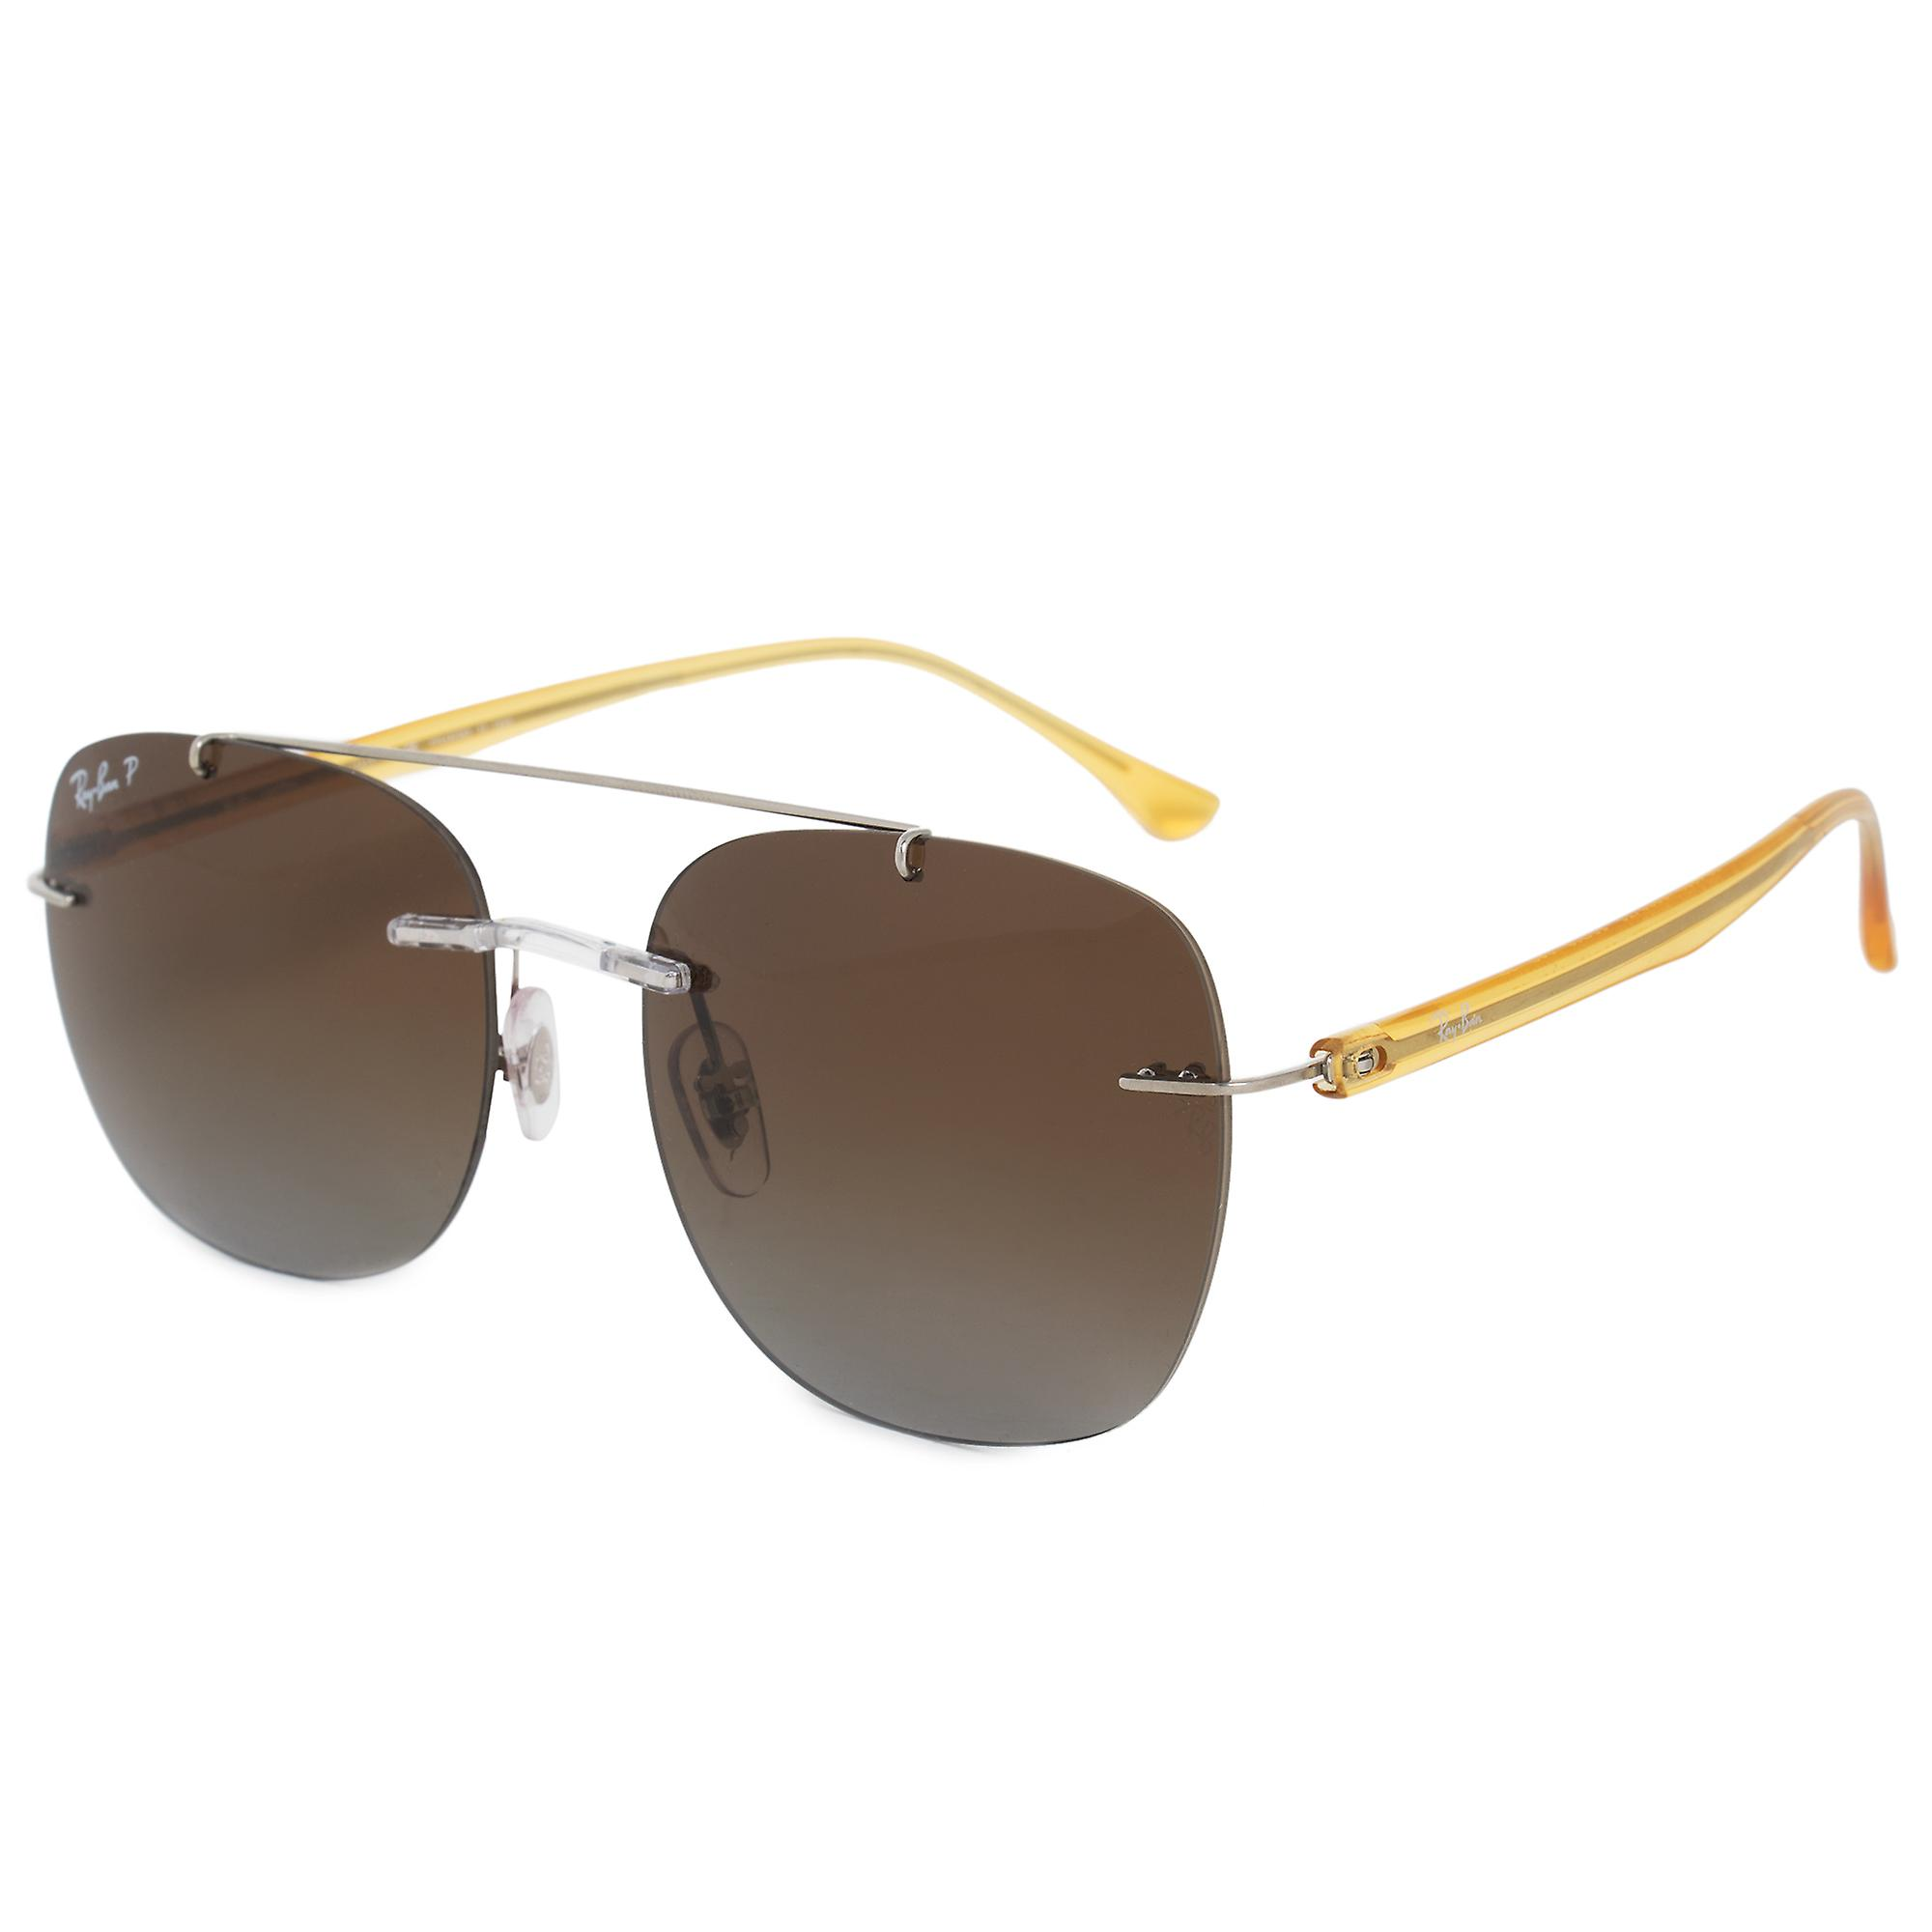 Ray-Ban Square Sunglasses RB4280 6288T5 55 | Silver Metal Frame | Polarized Brown Lenses